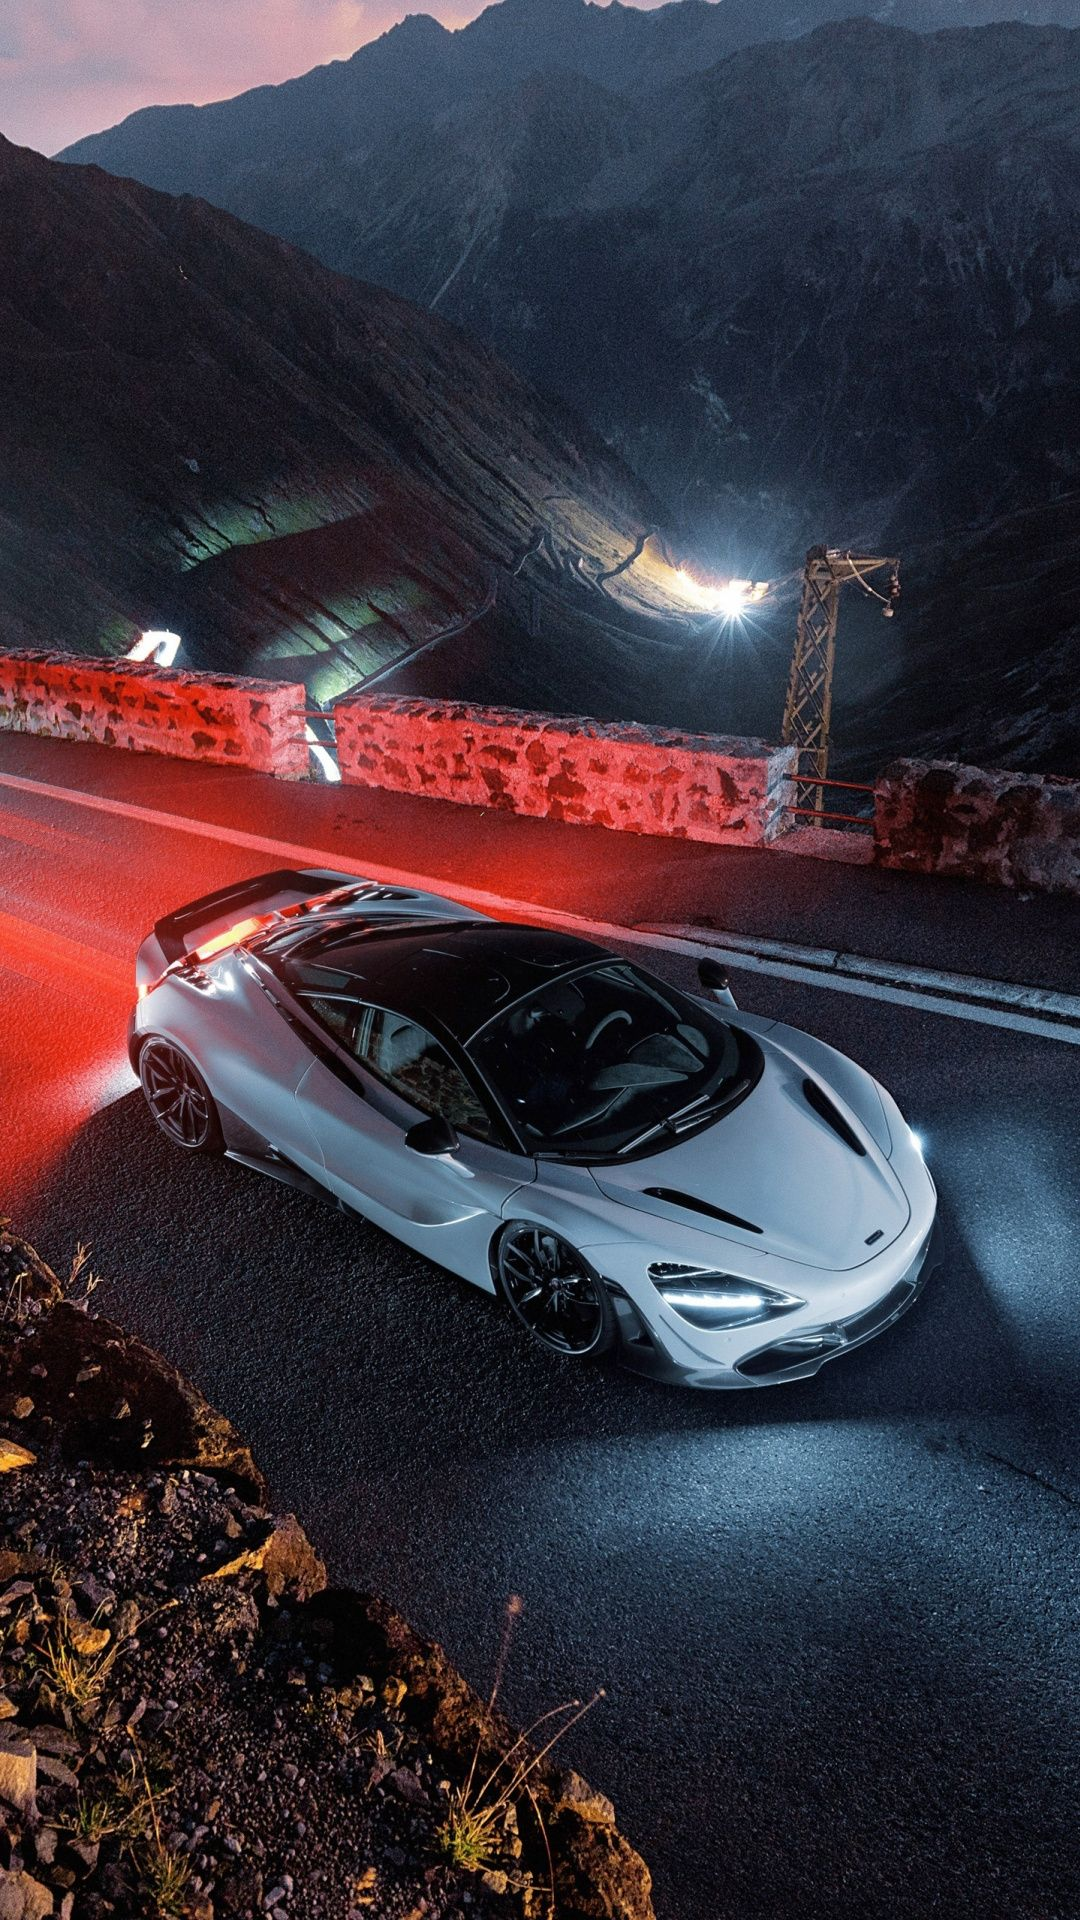 Novitec Mclaren 720s Sports Car On Road 2018 1080x1920 Wallpaper